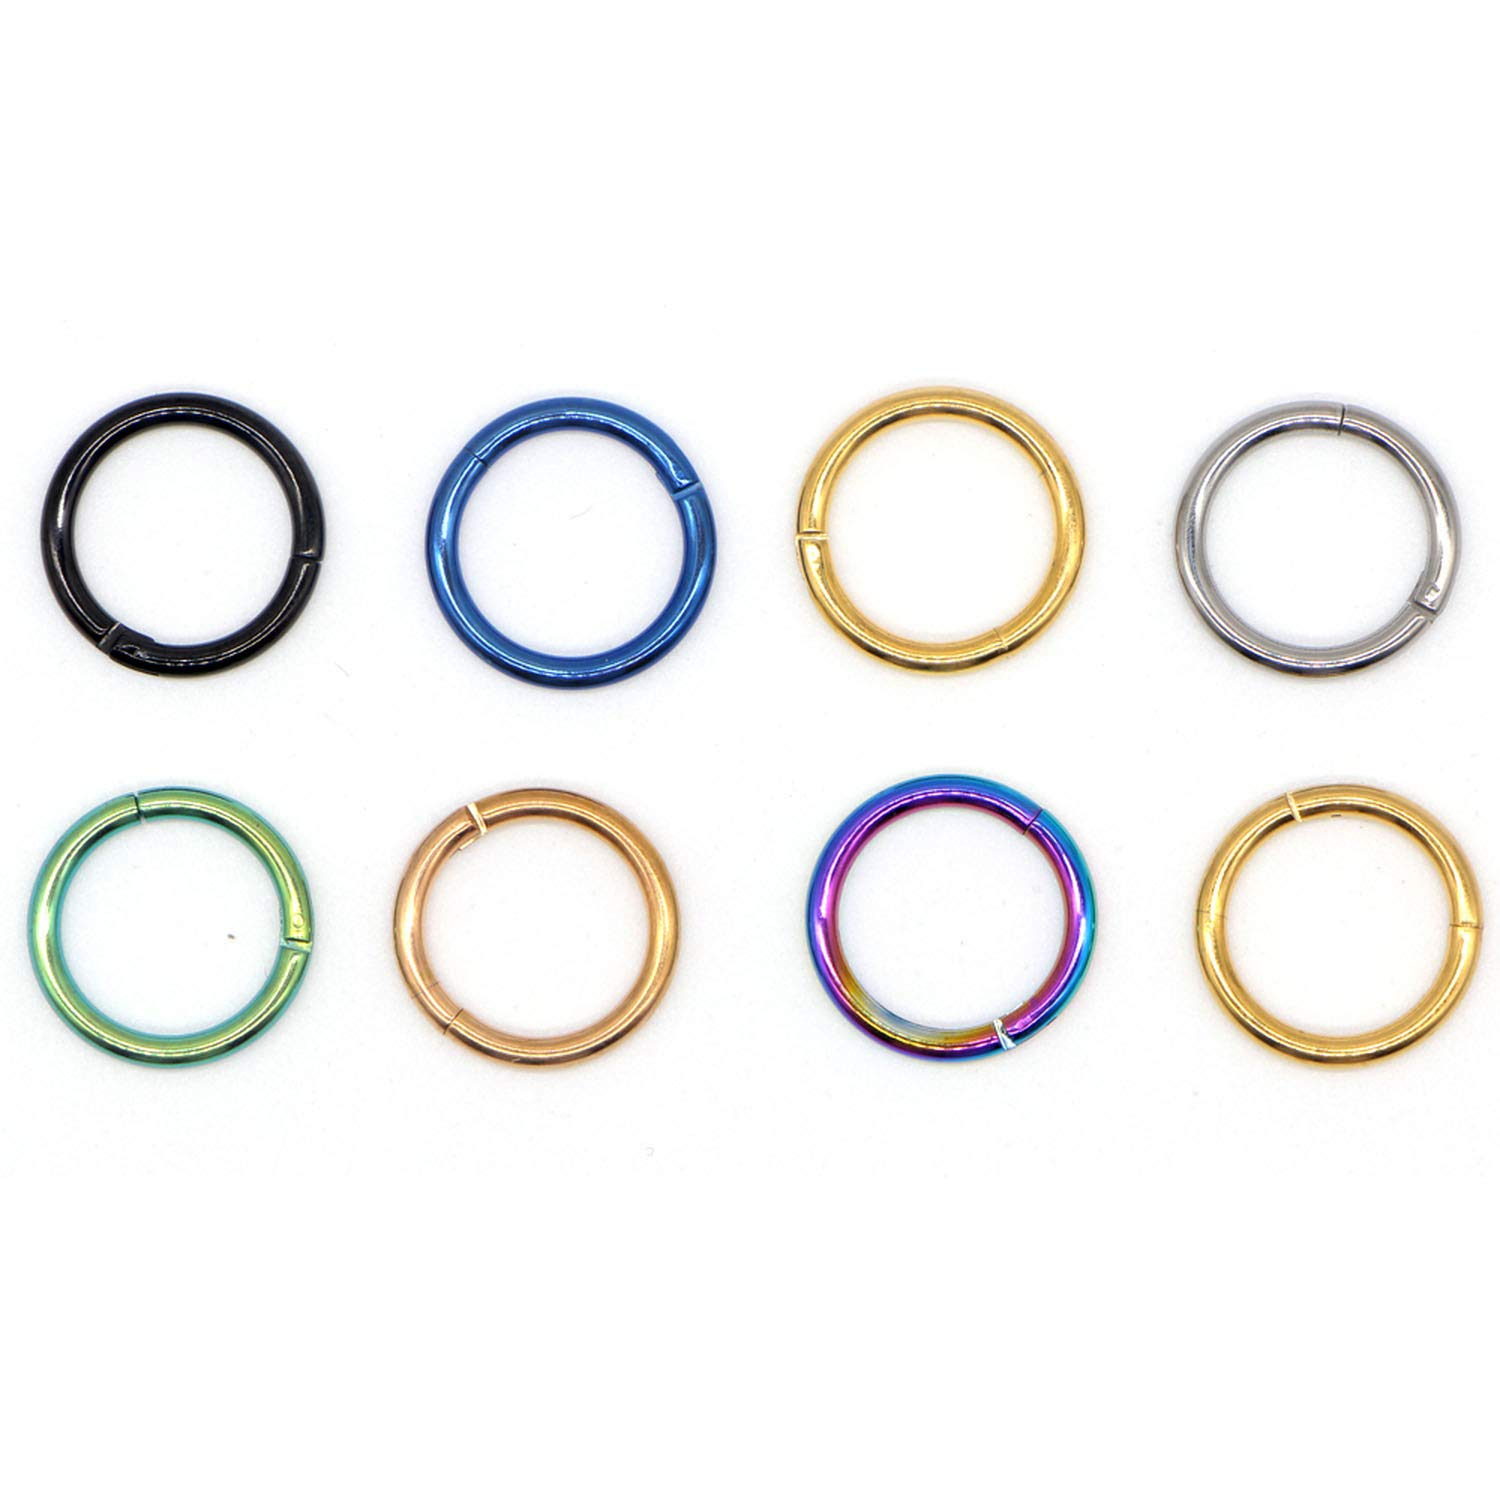 1Pc Steel Tiny Nostril Segment Nose Rings Ear Nose Hoop Piercings Clip On Rings,14G Length 8Mm,Colorful